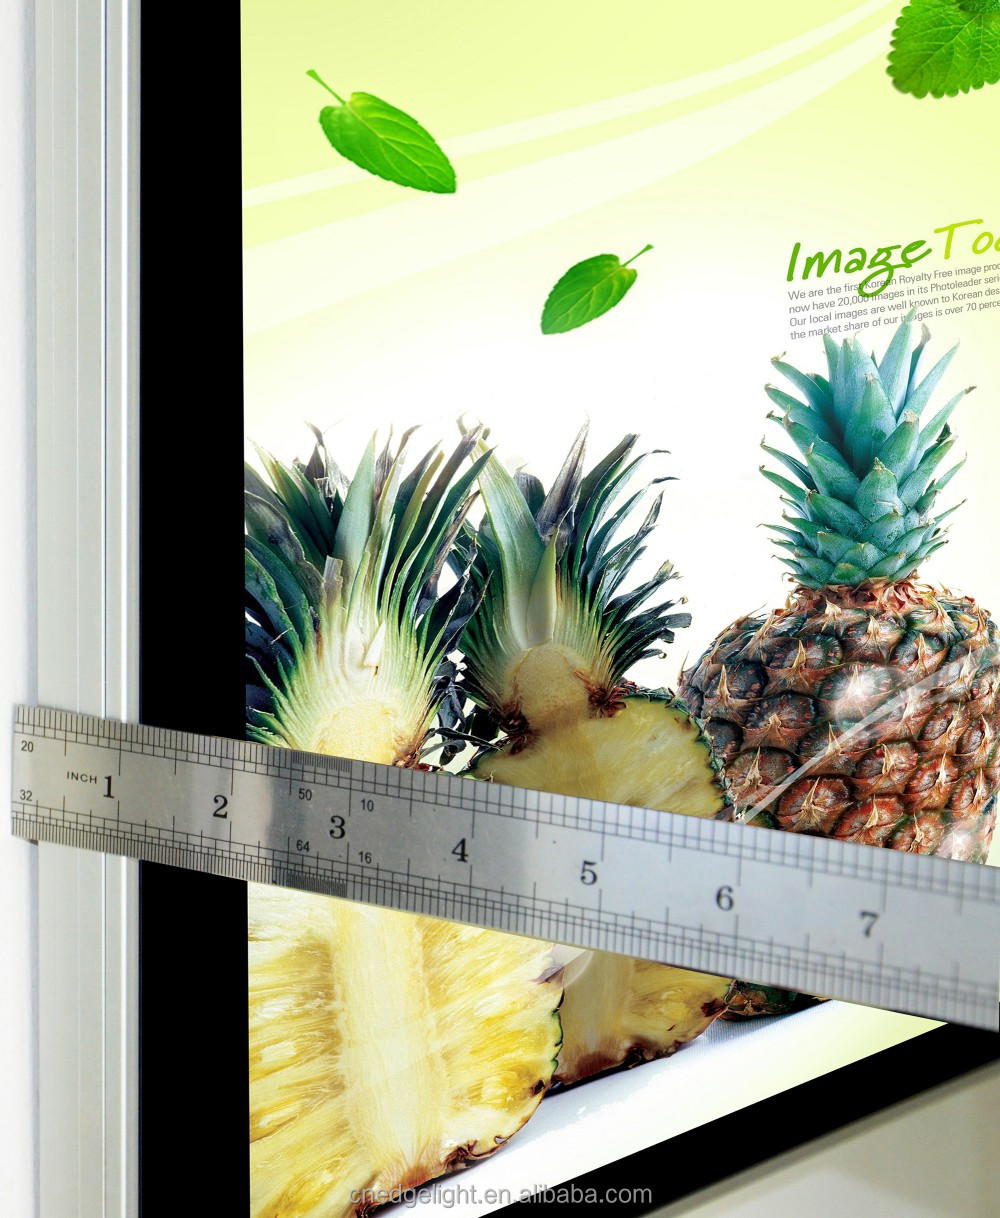 Super Slim LED Light Box ALuminous frame magnetic type with single side